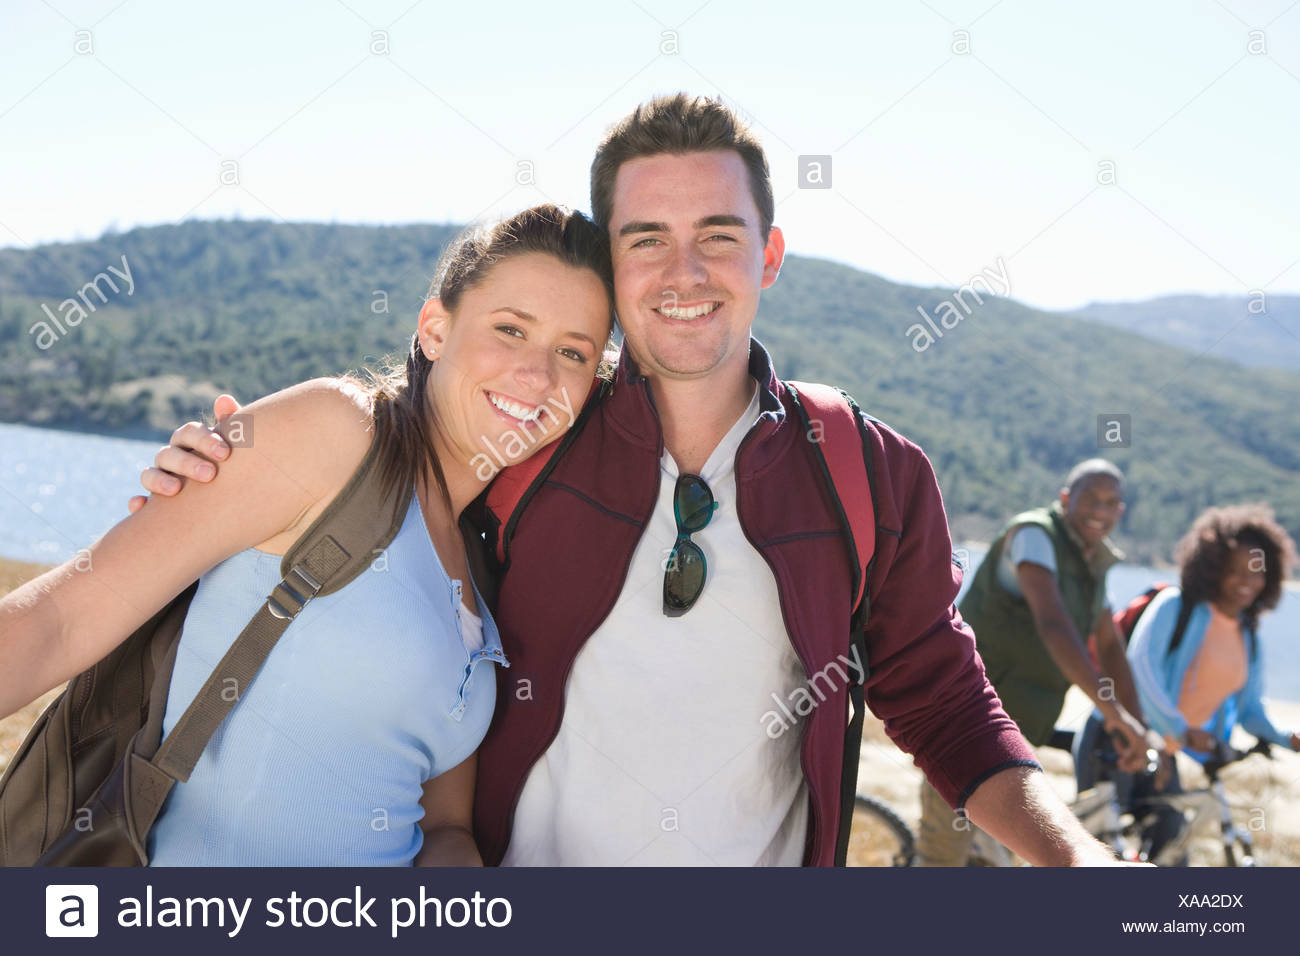 Young couple stand at lakeside, man with his arm around the woman - Stock Image